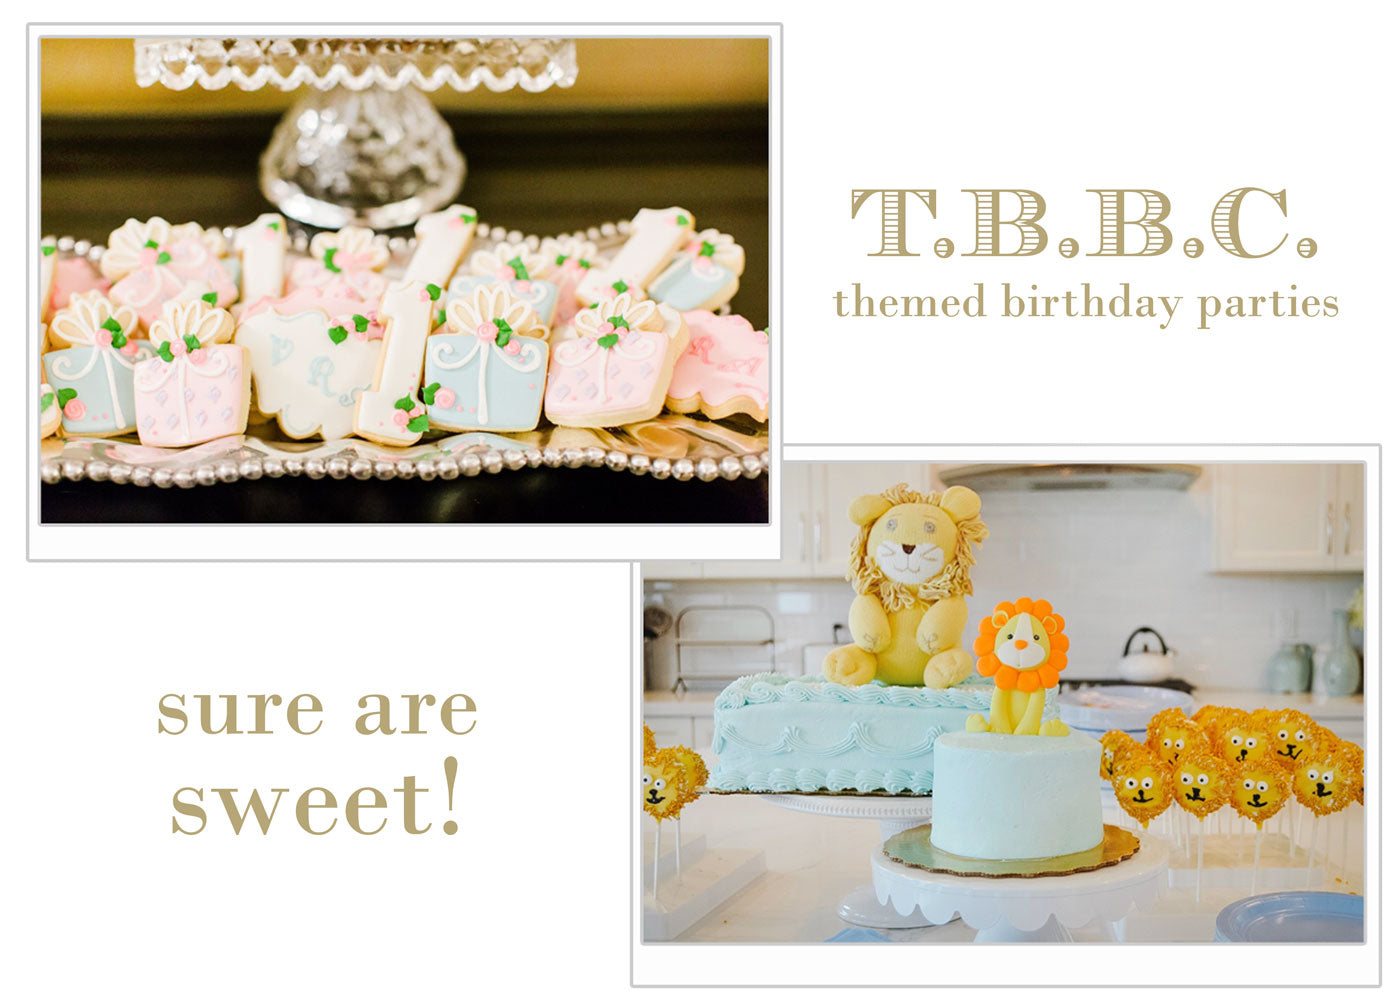 T.B.B.C. themed birthday parties